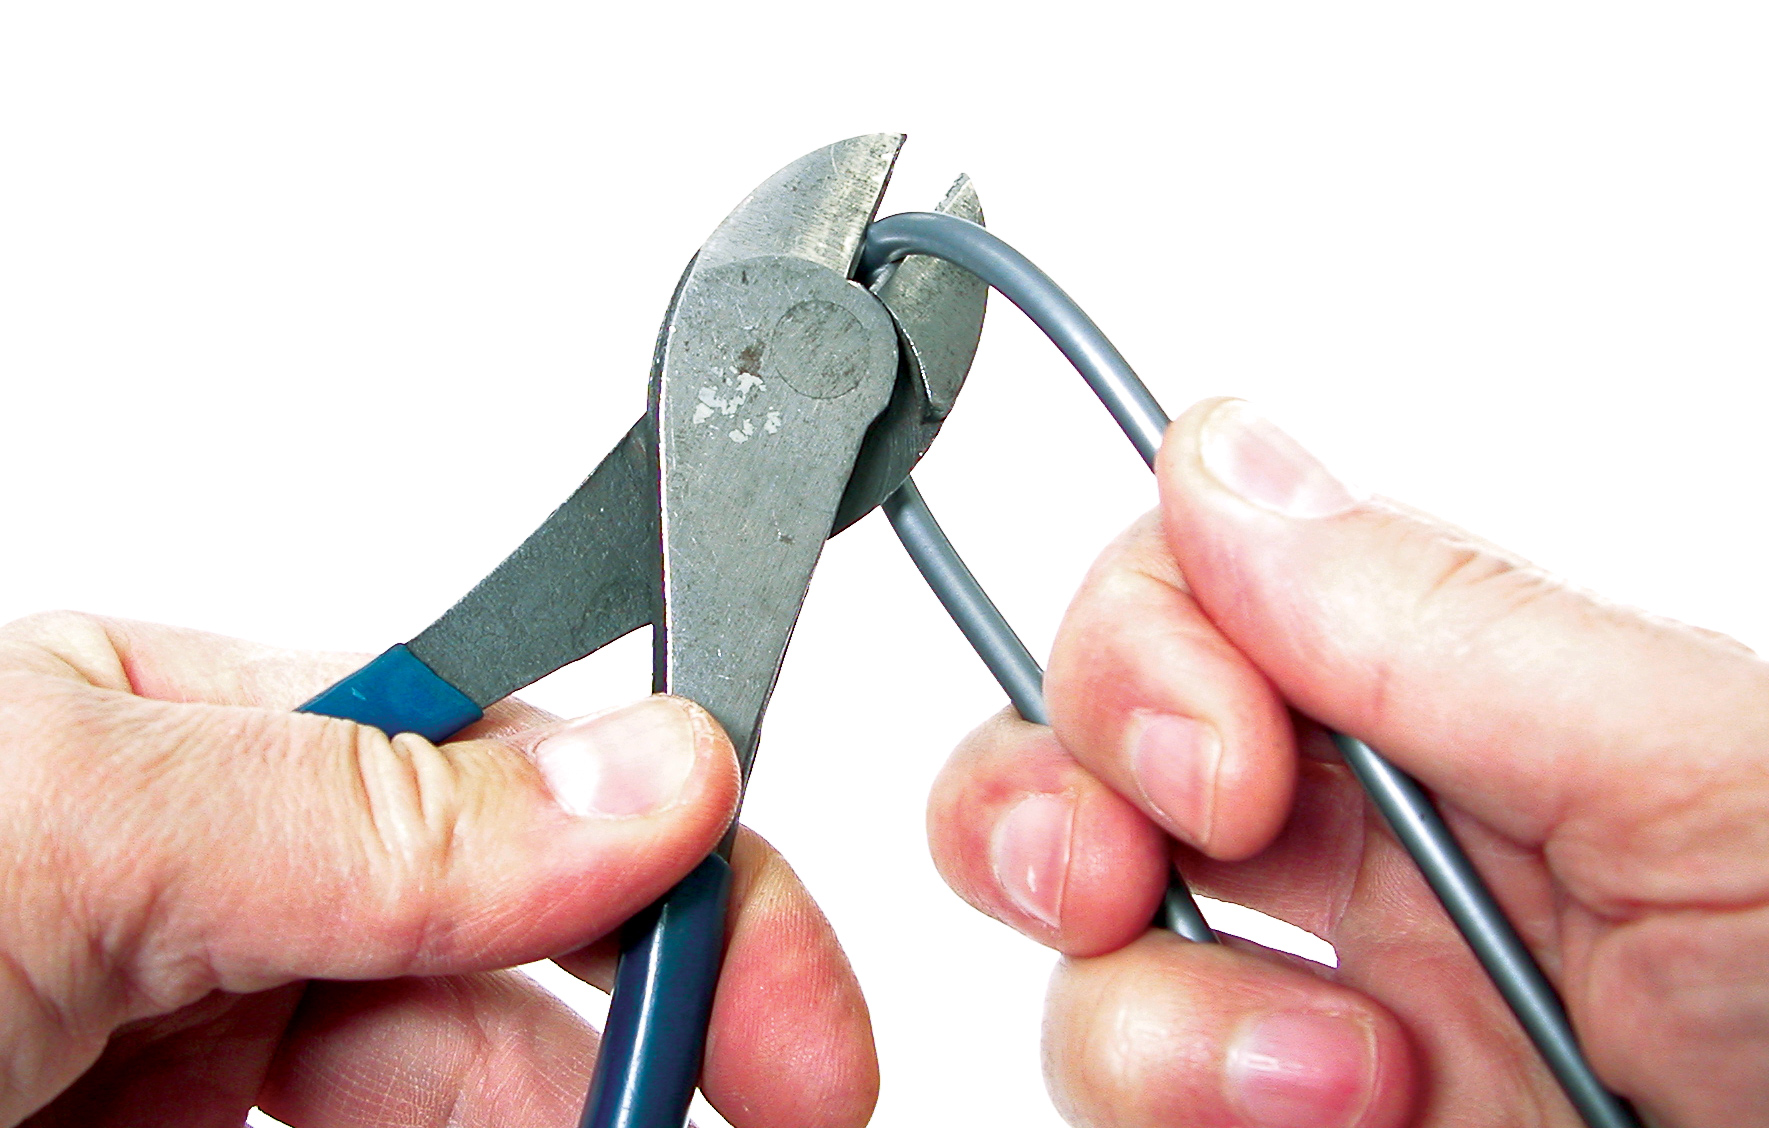 Hold housing close to cutter to keep it square